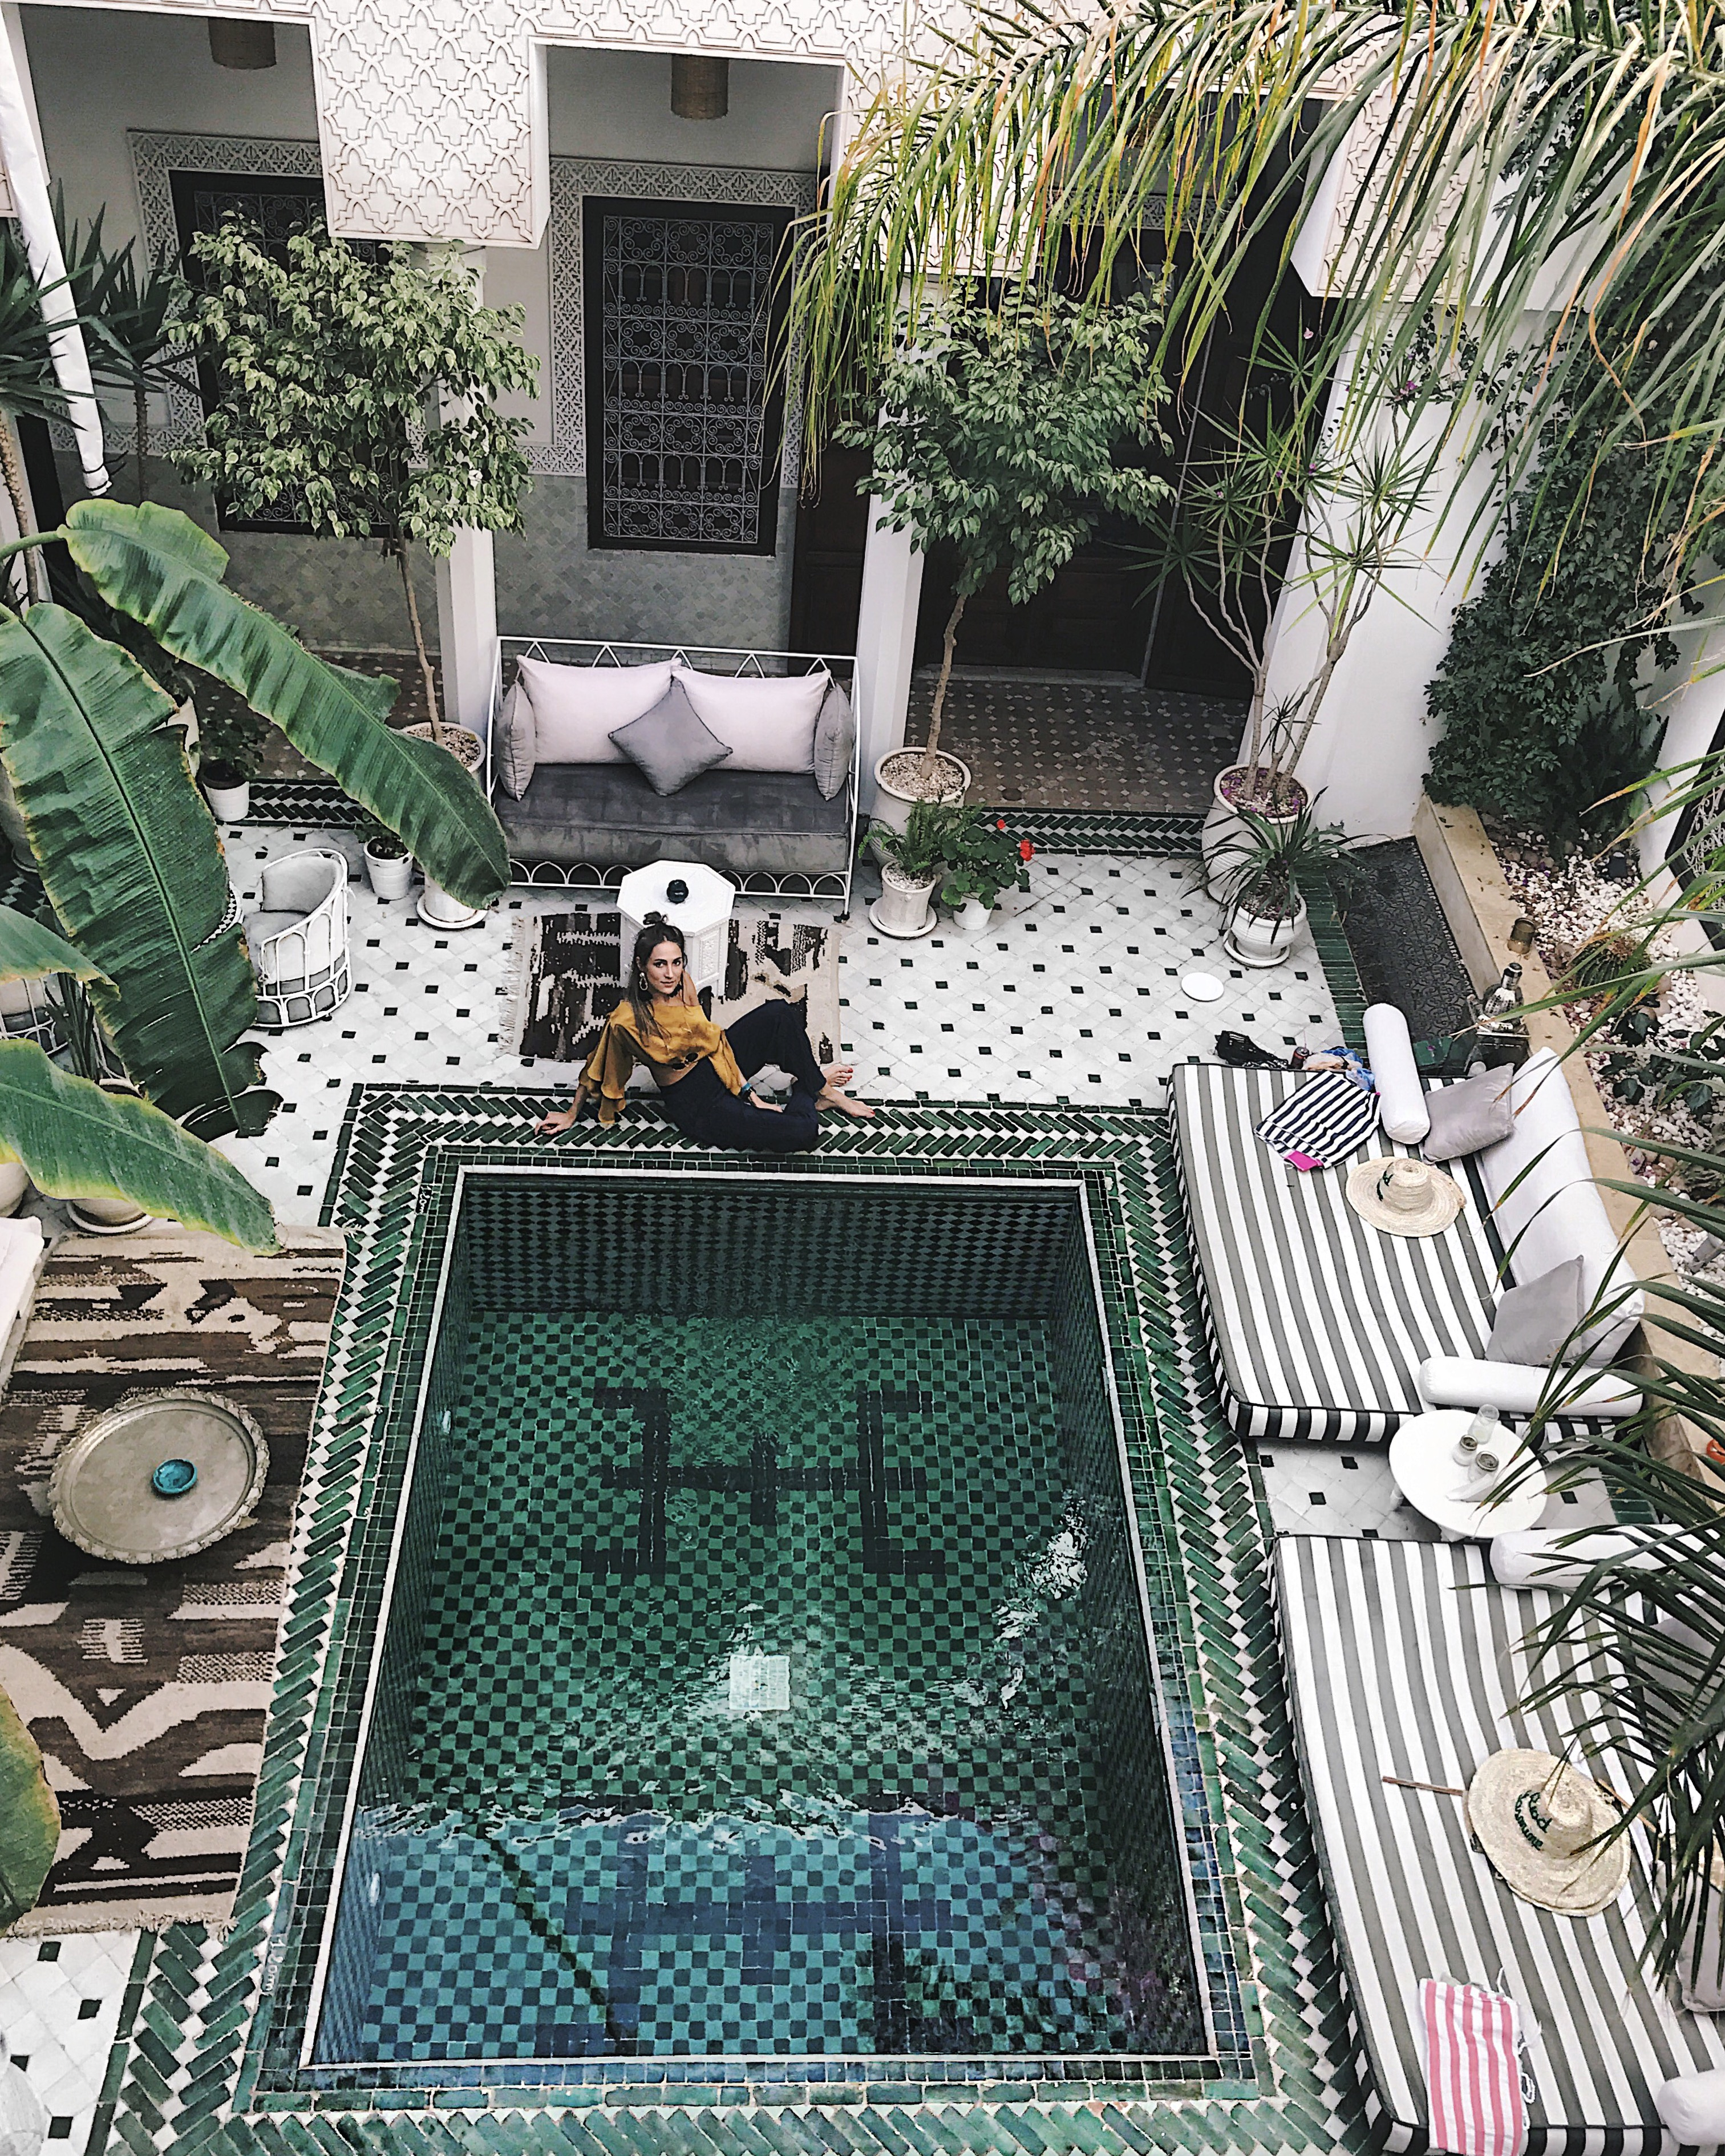 linda_tsetis_worlds_affair_travel_riad_yasmine_marrakech_wonderlust